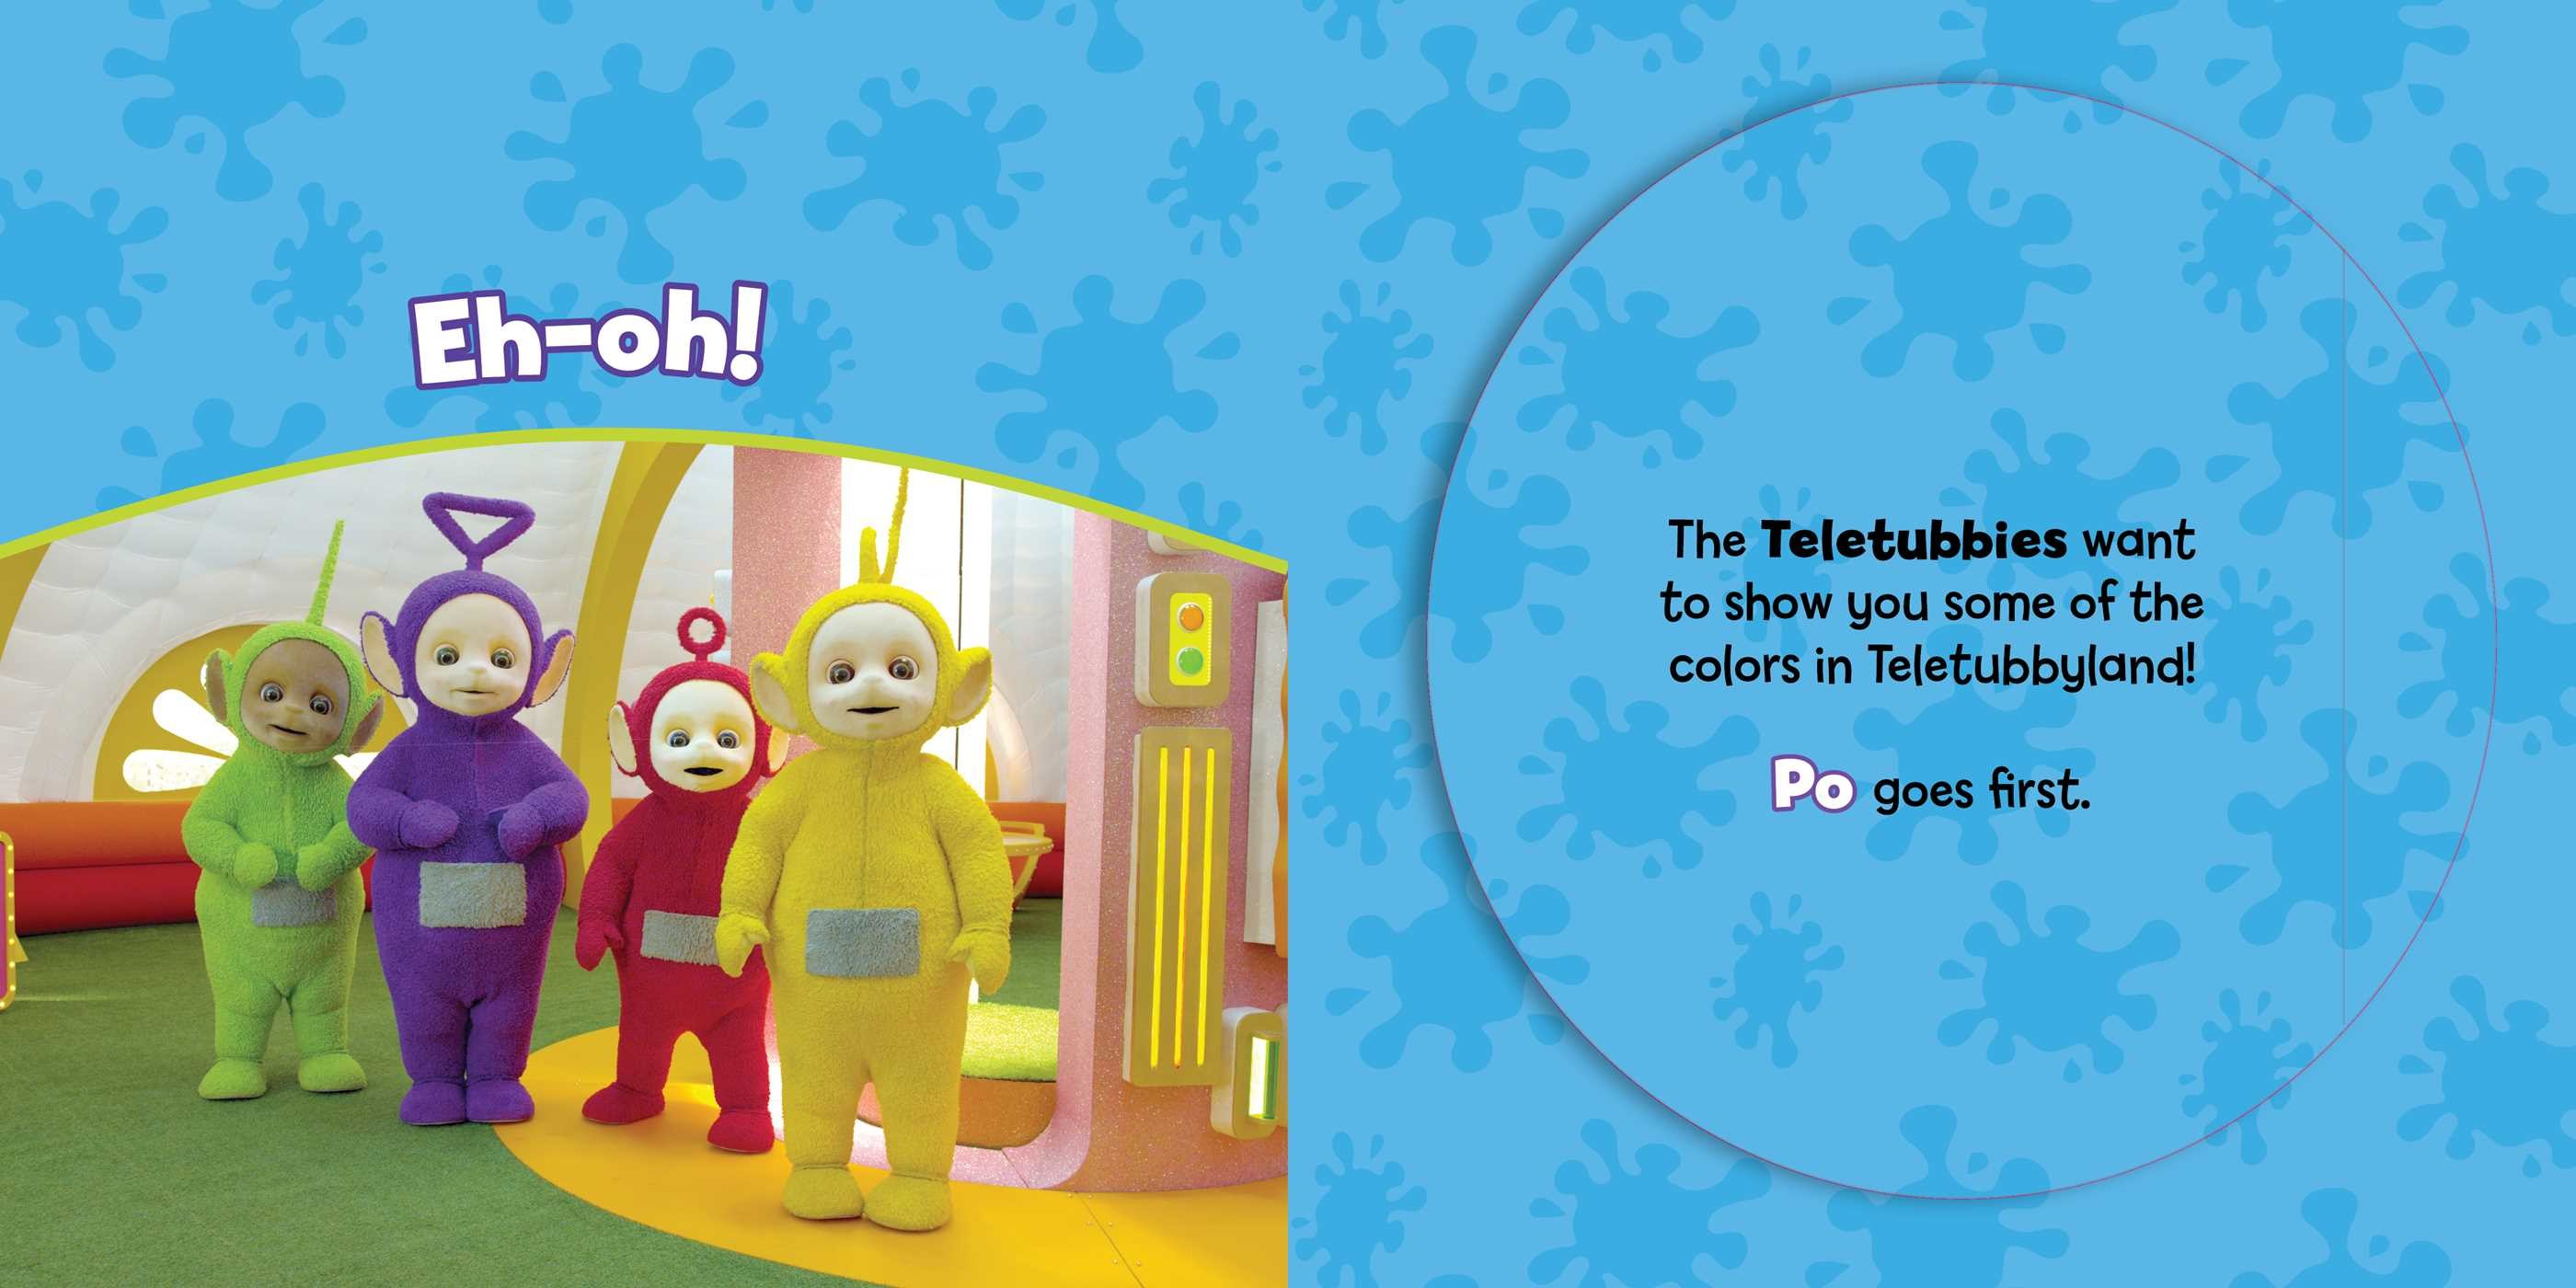 Time for teletubbies 9781481480536.in01